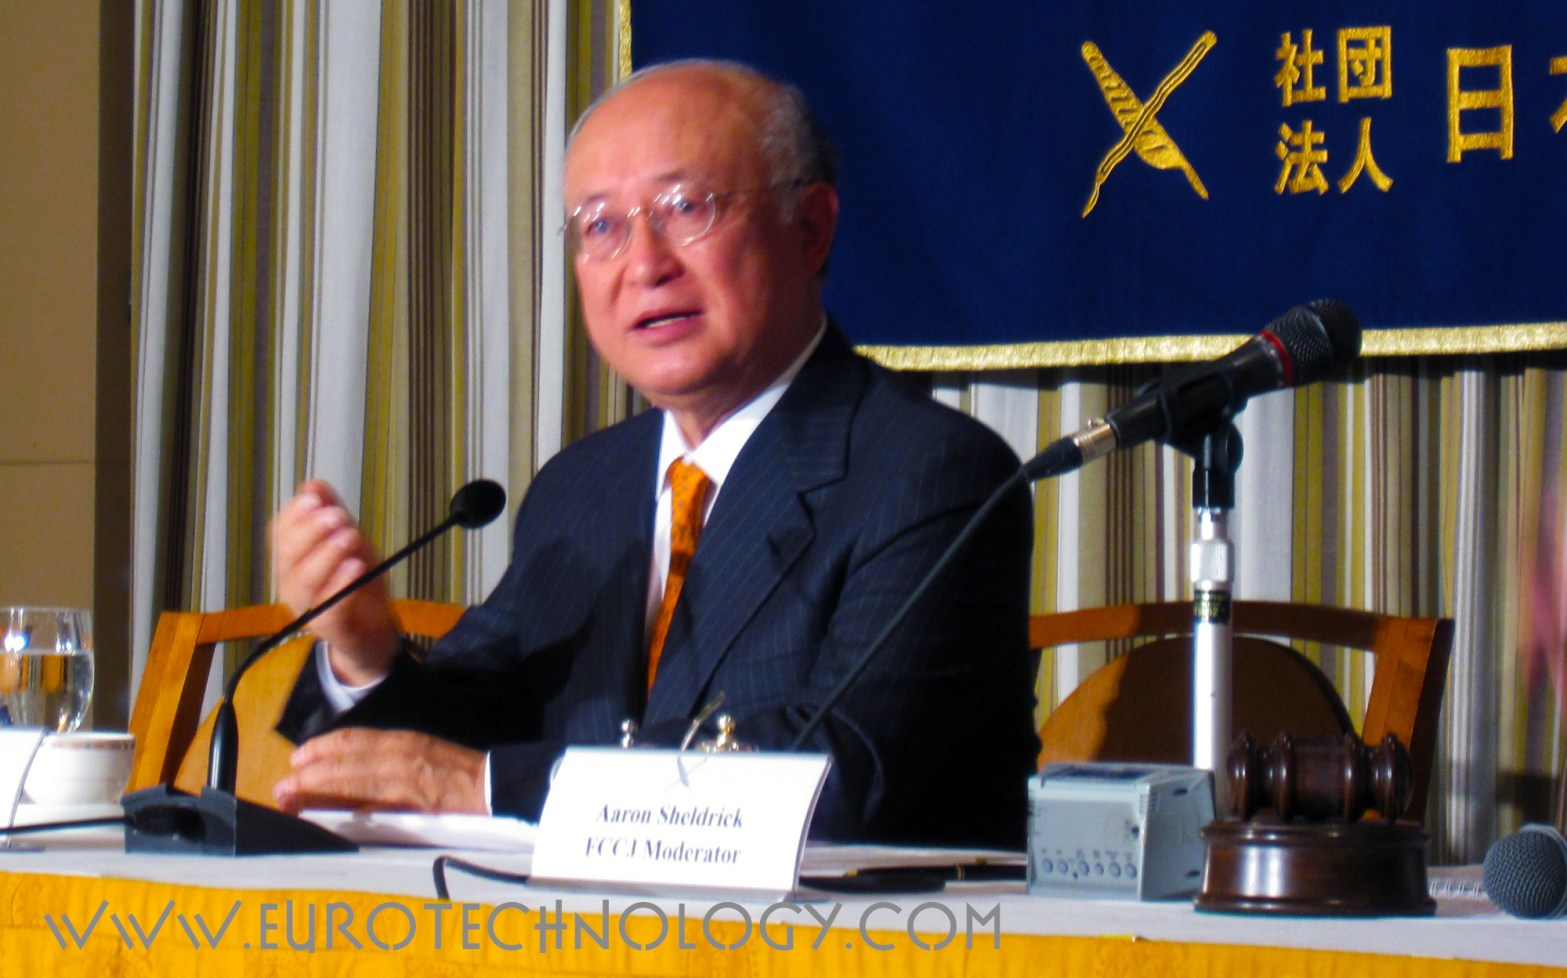 Mr Yukiya Amano (天野之弥), Director General of the International Atomic Energy Agency (IAEA)